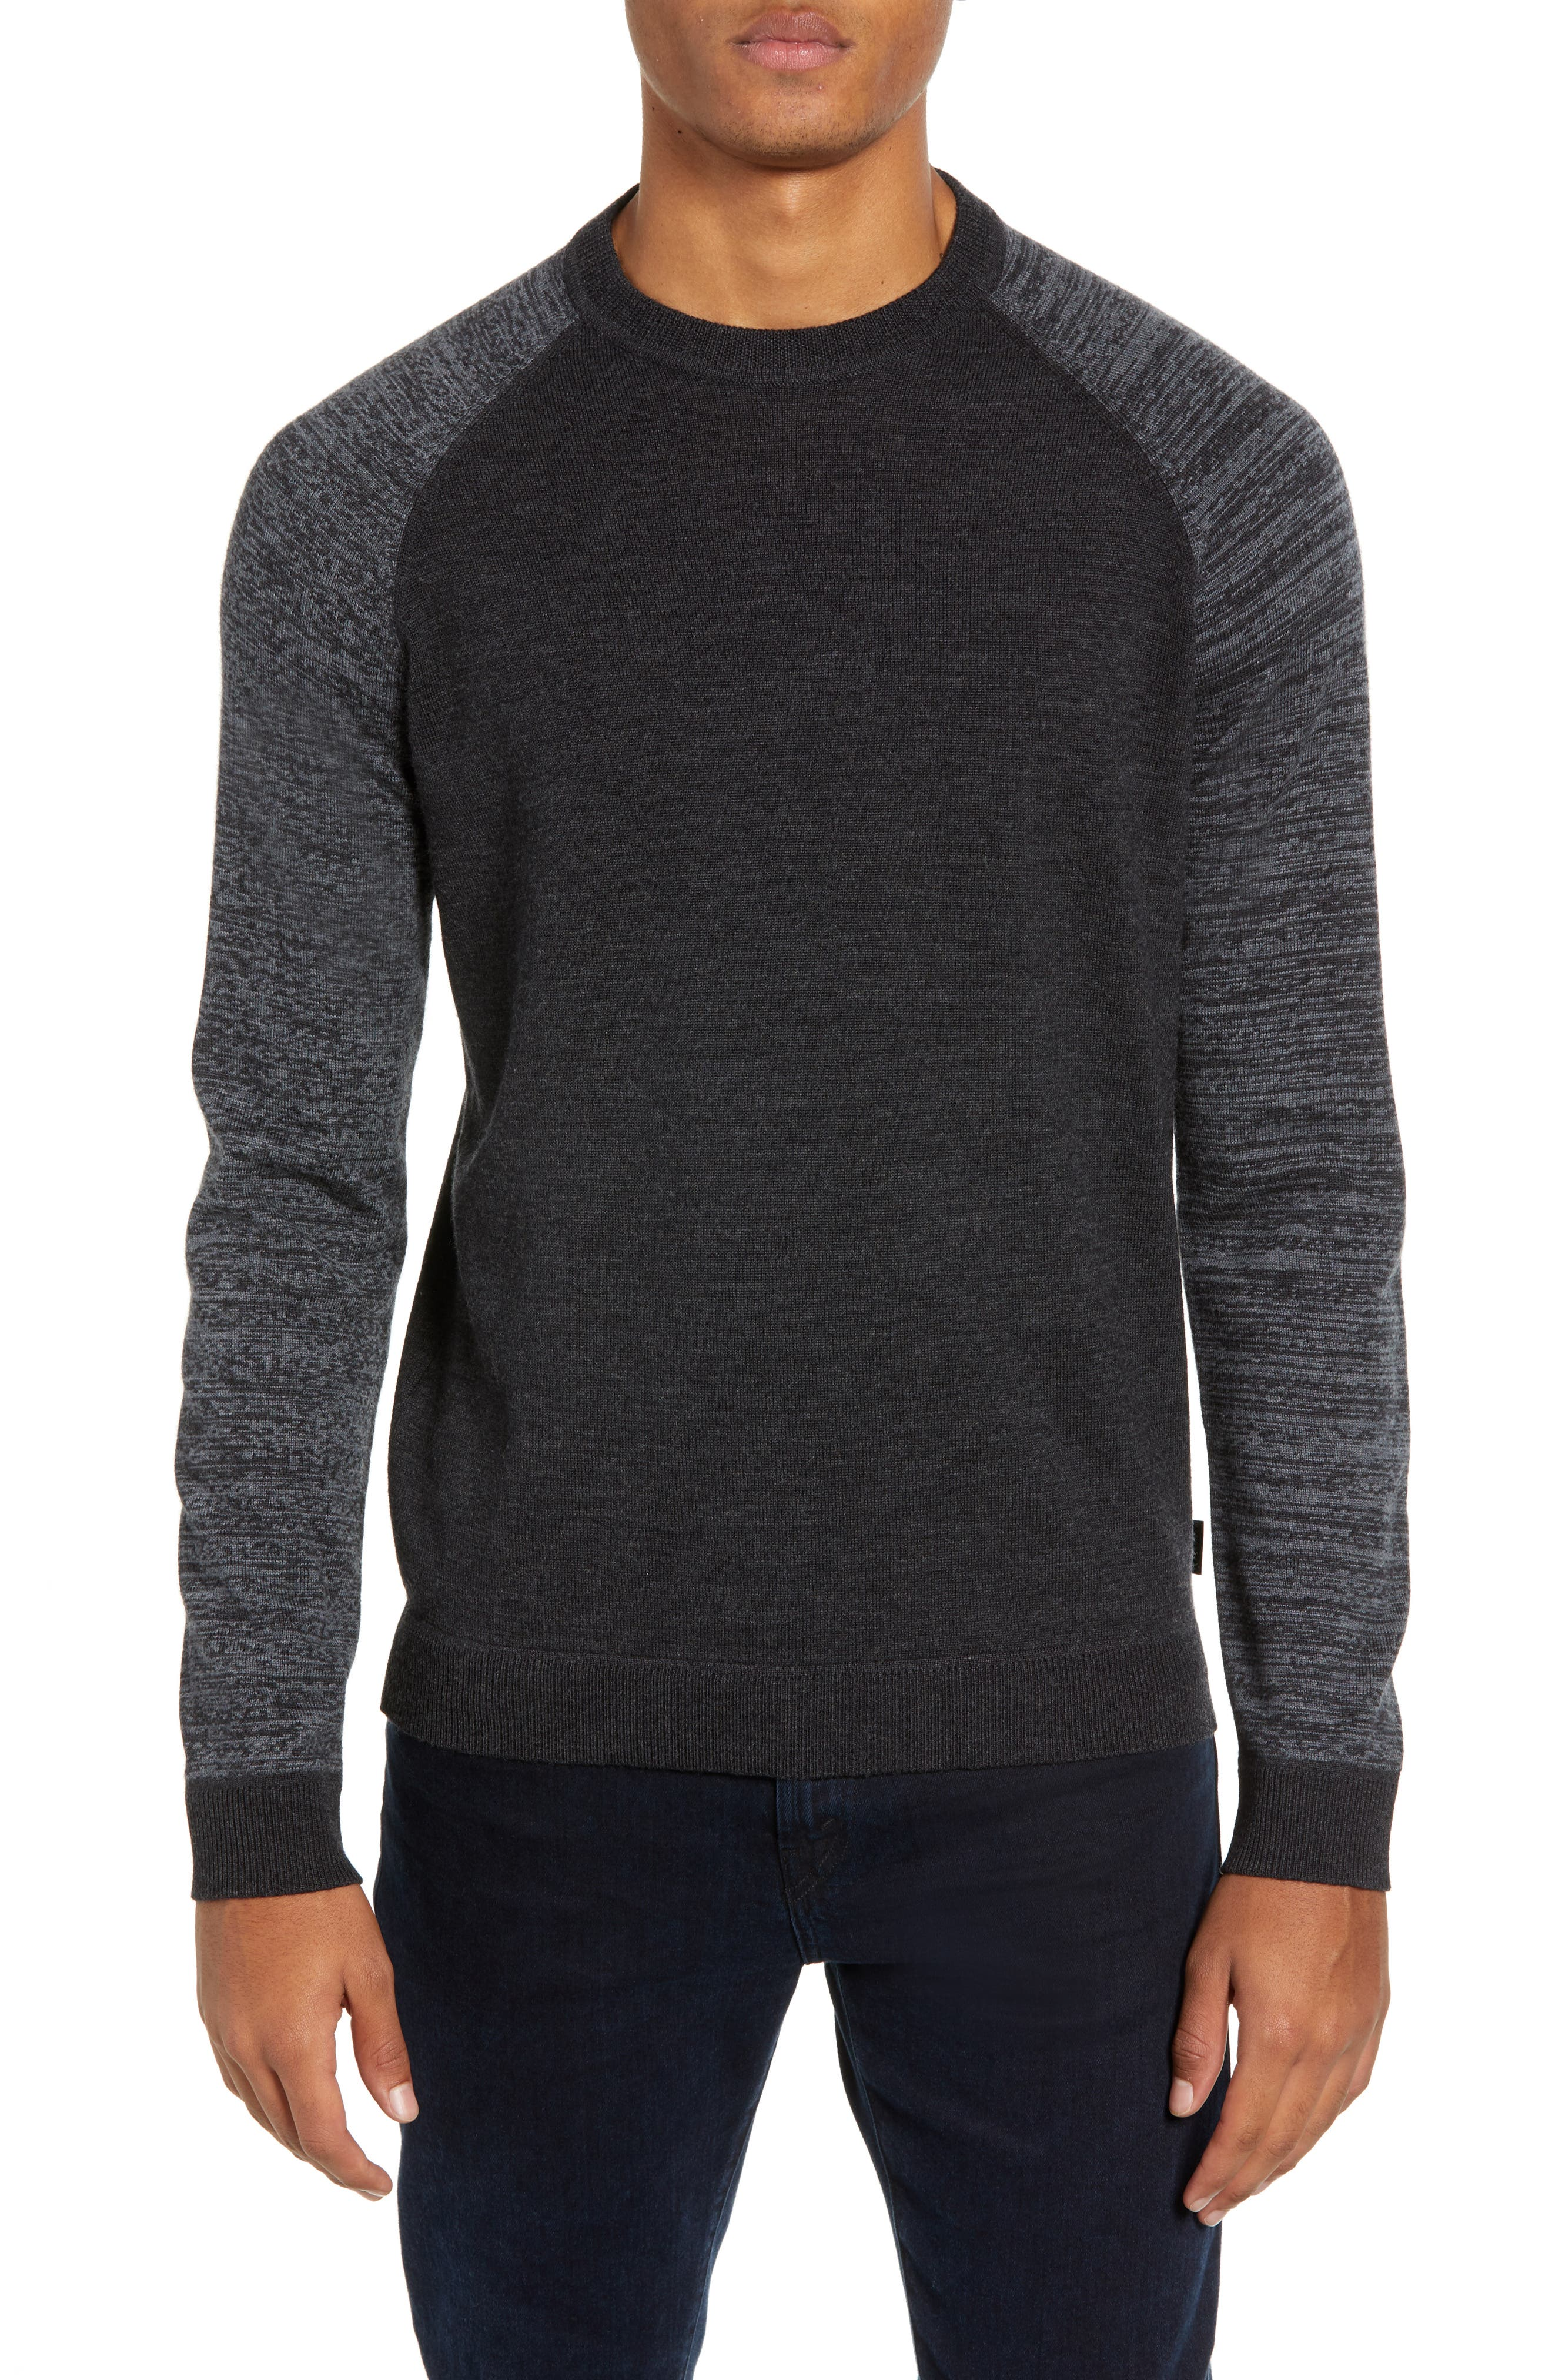 Cornfed Slim Fit Sweater,                         Main,                         color, CHARCOAL